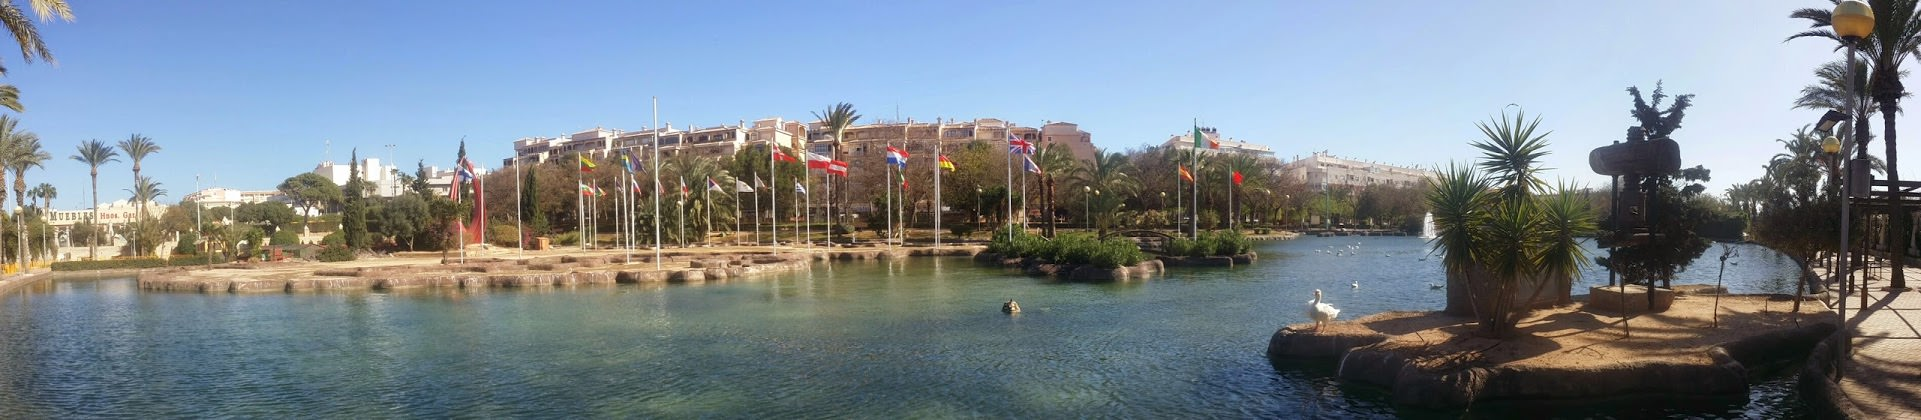 Park of Nations